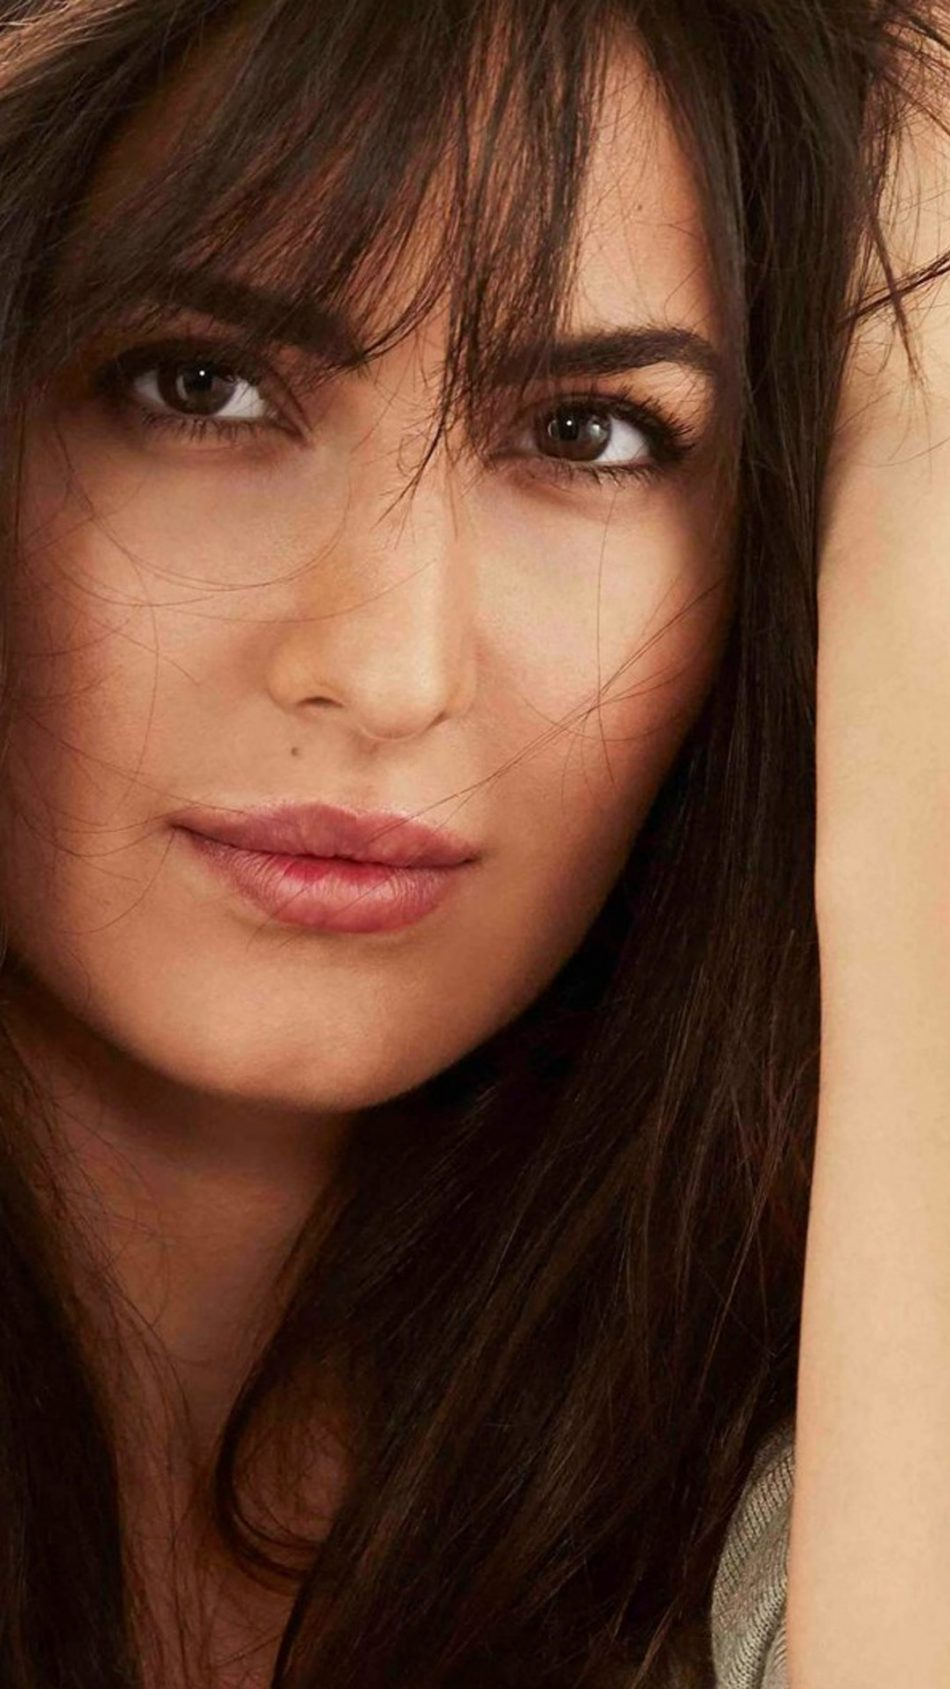 katrina kaif cute photoshoot 2018 - download free 100% pure hd